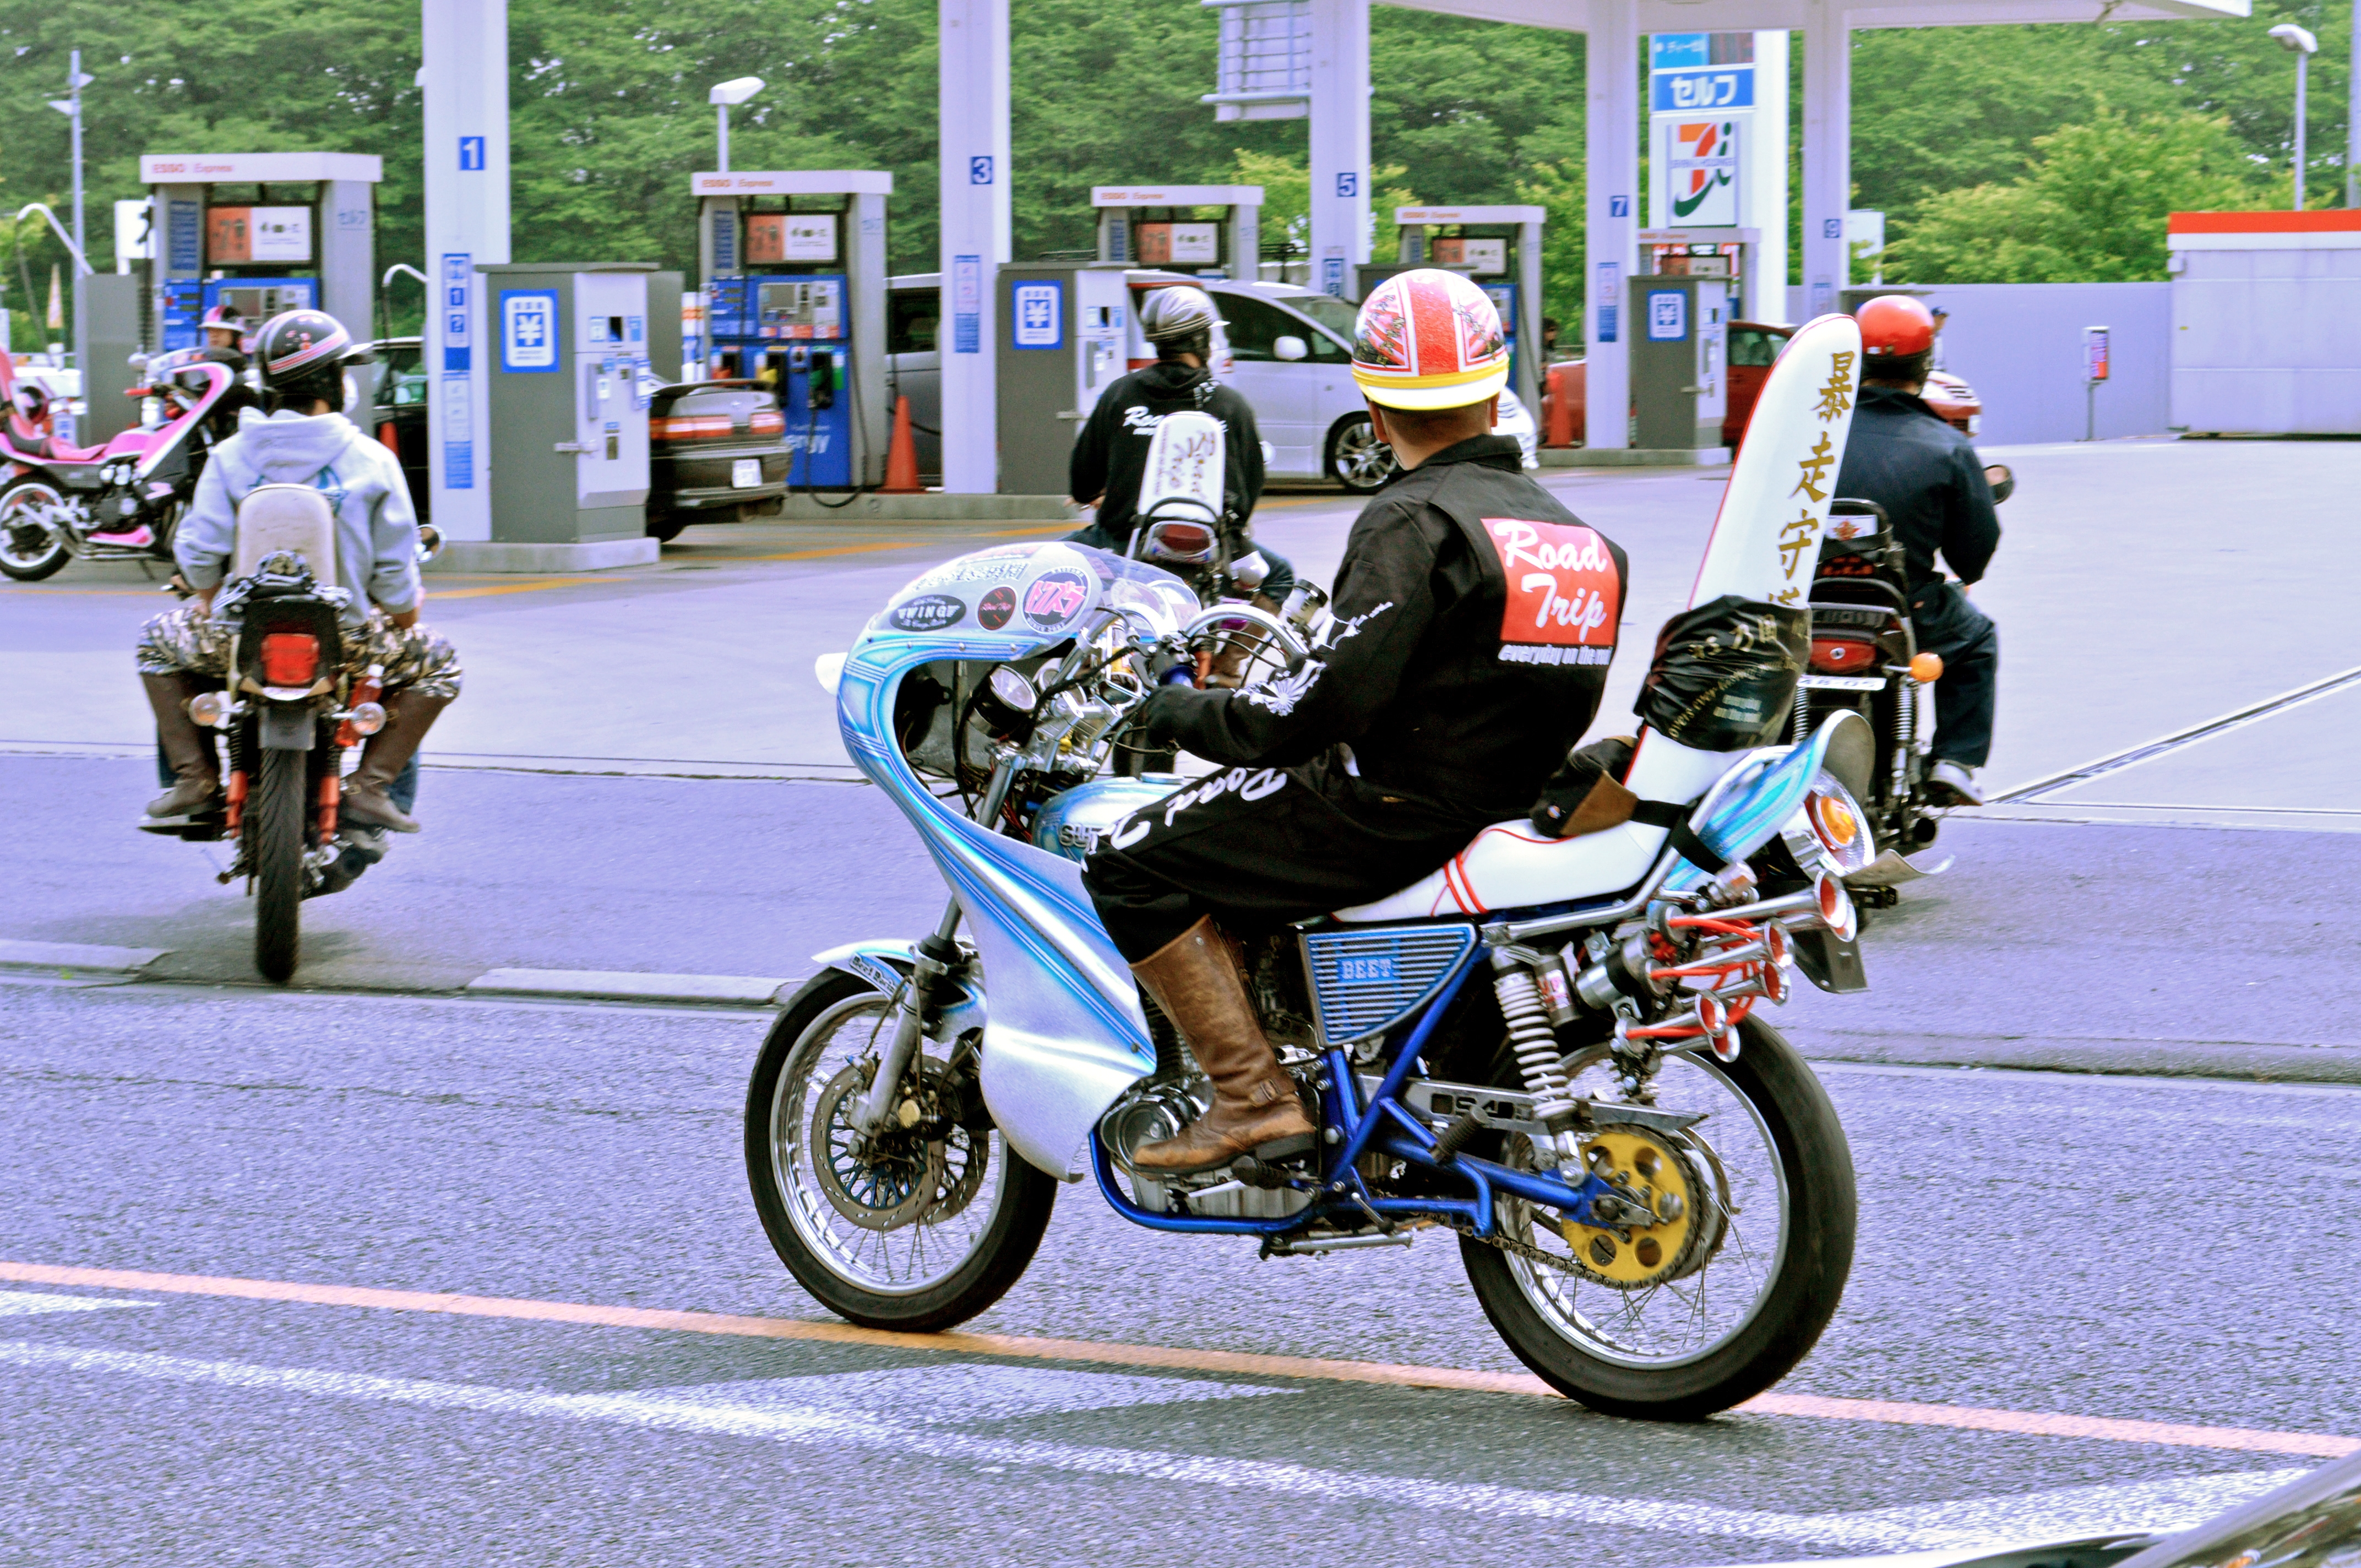 Five or more bōsōzoku members on their modified motorcycles stopped at a 7/11 convenience store somewhere in Japan.